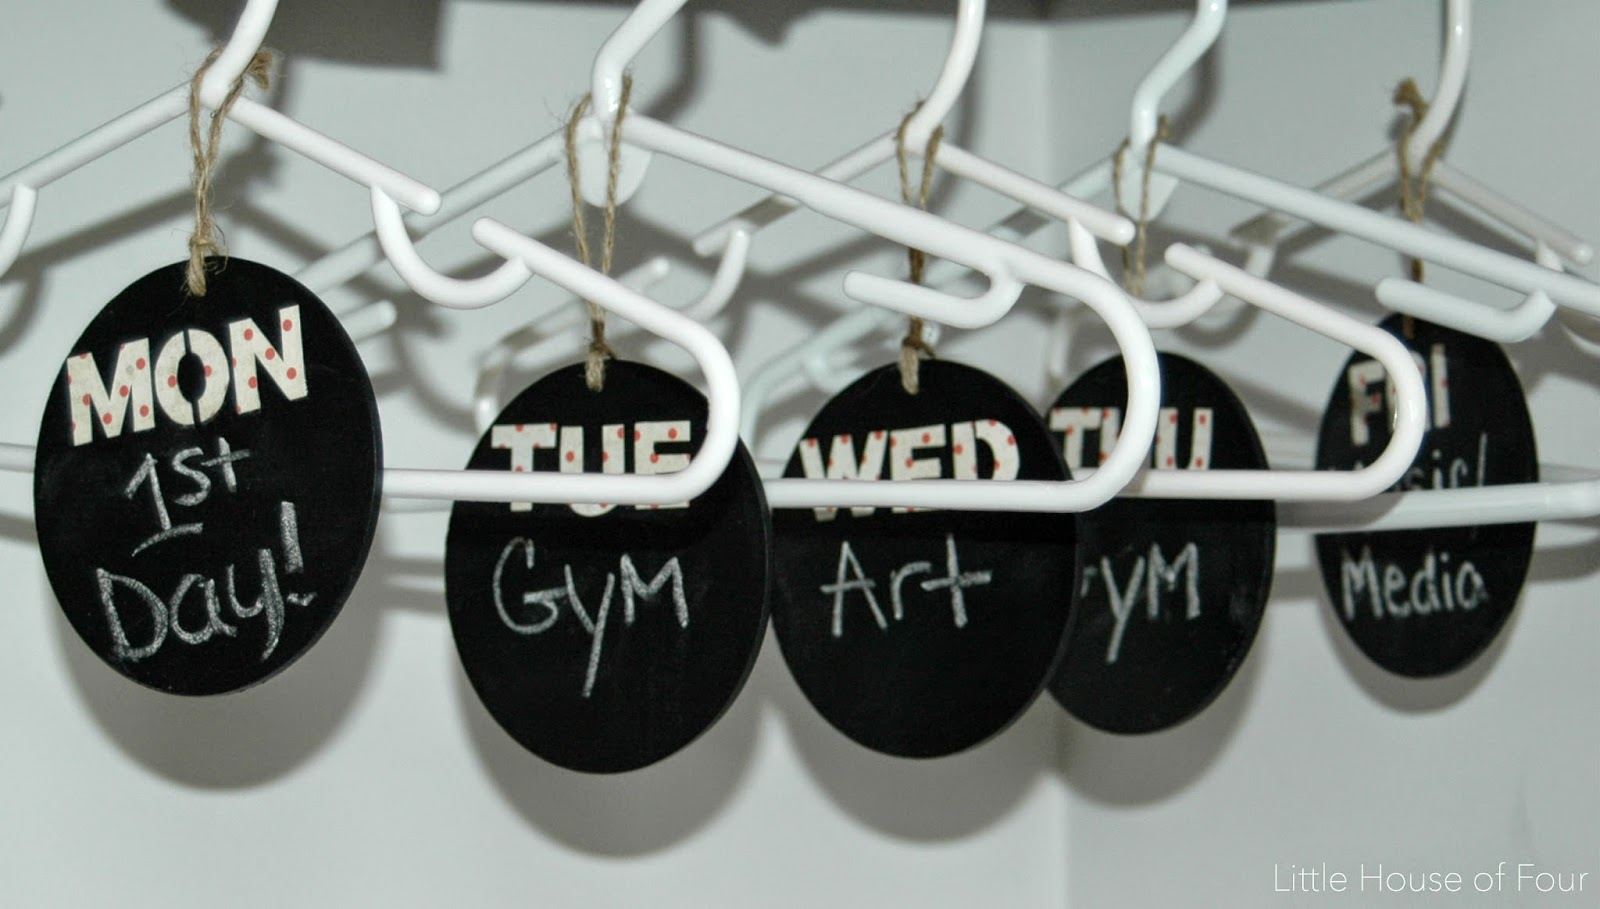 Chalkboard tags hung on hangers